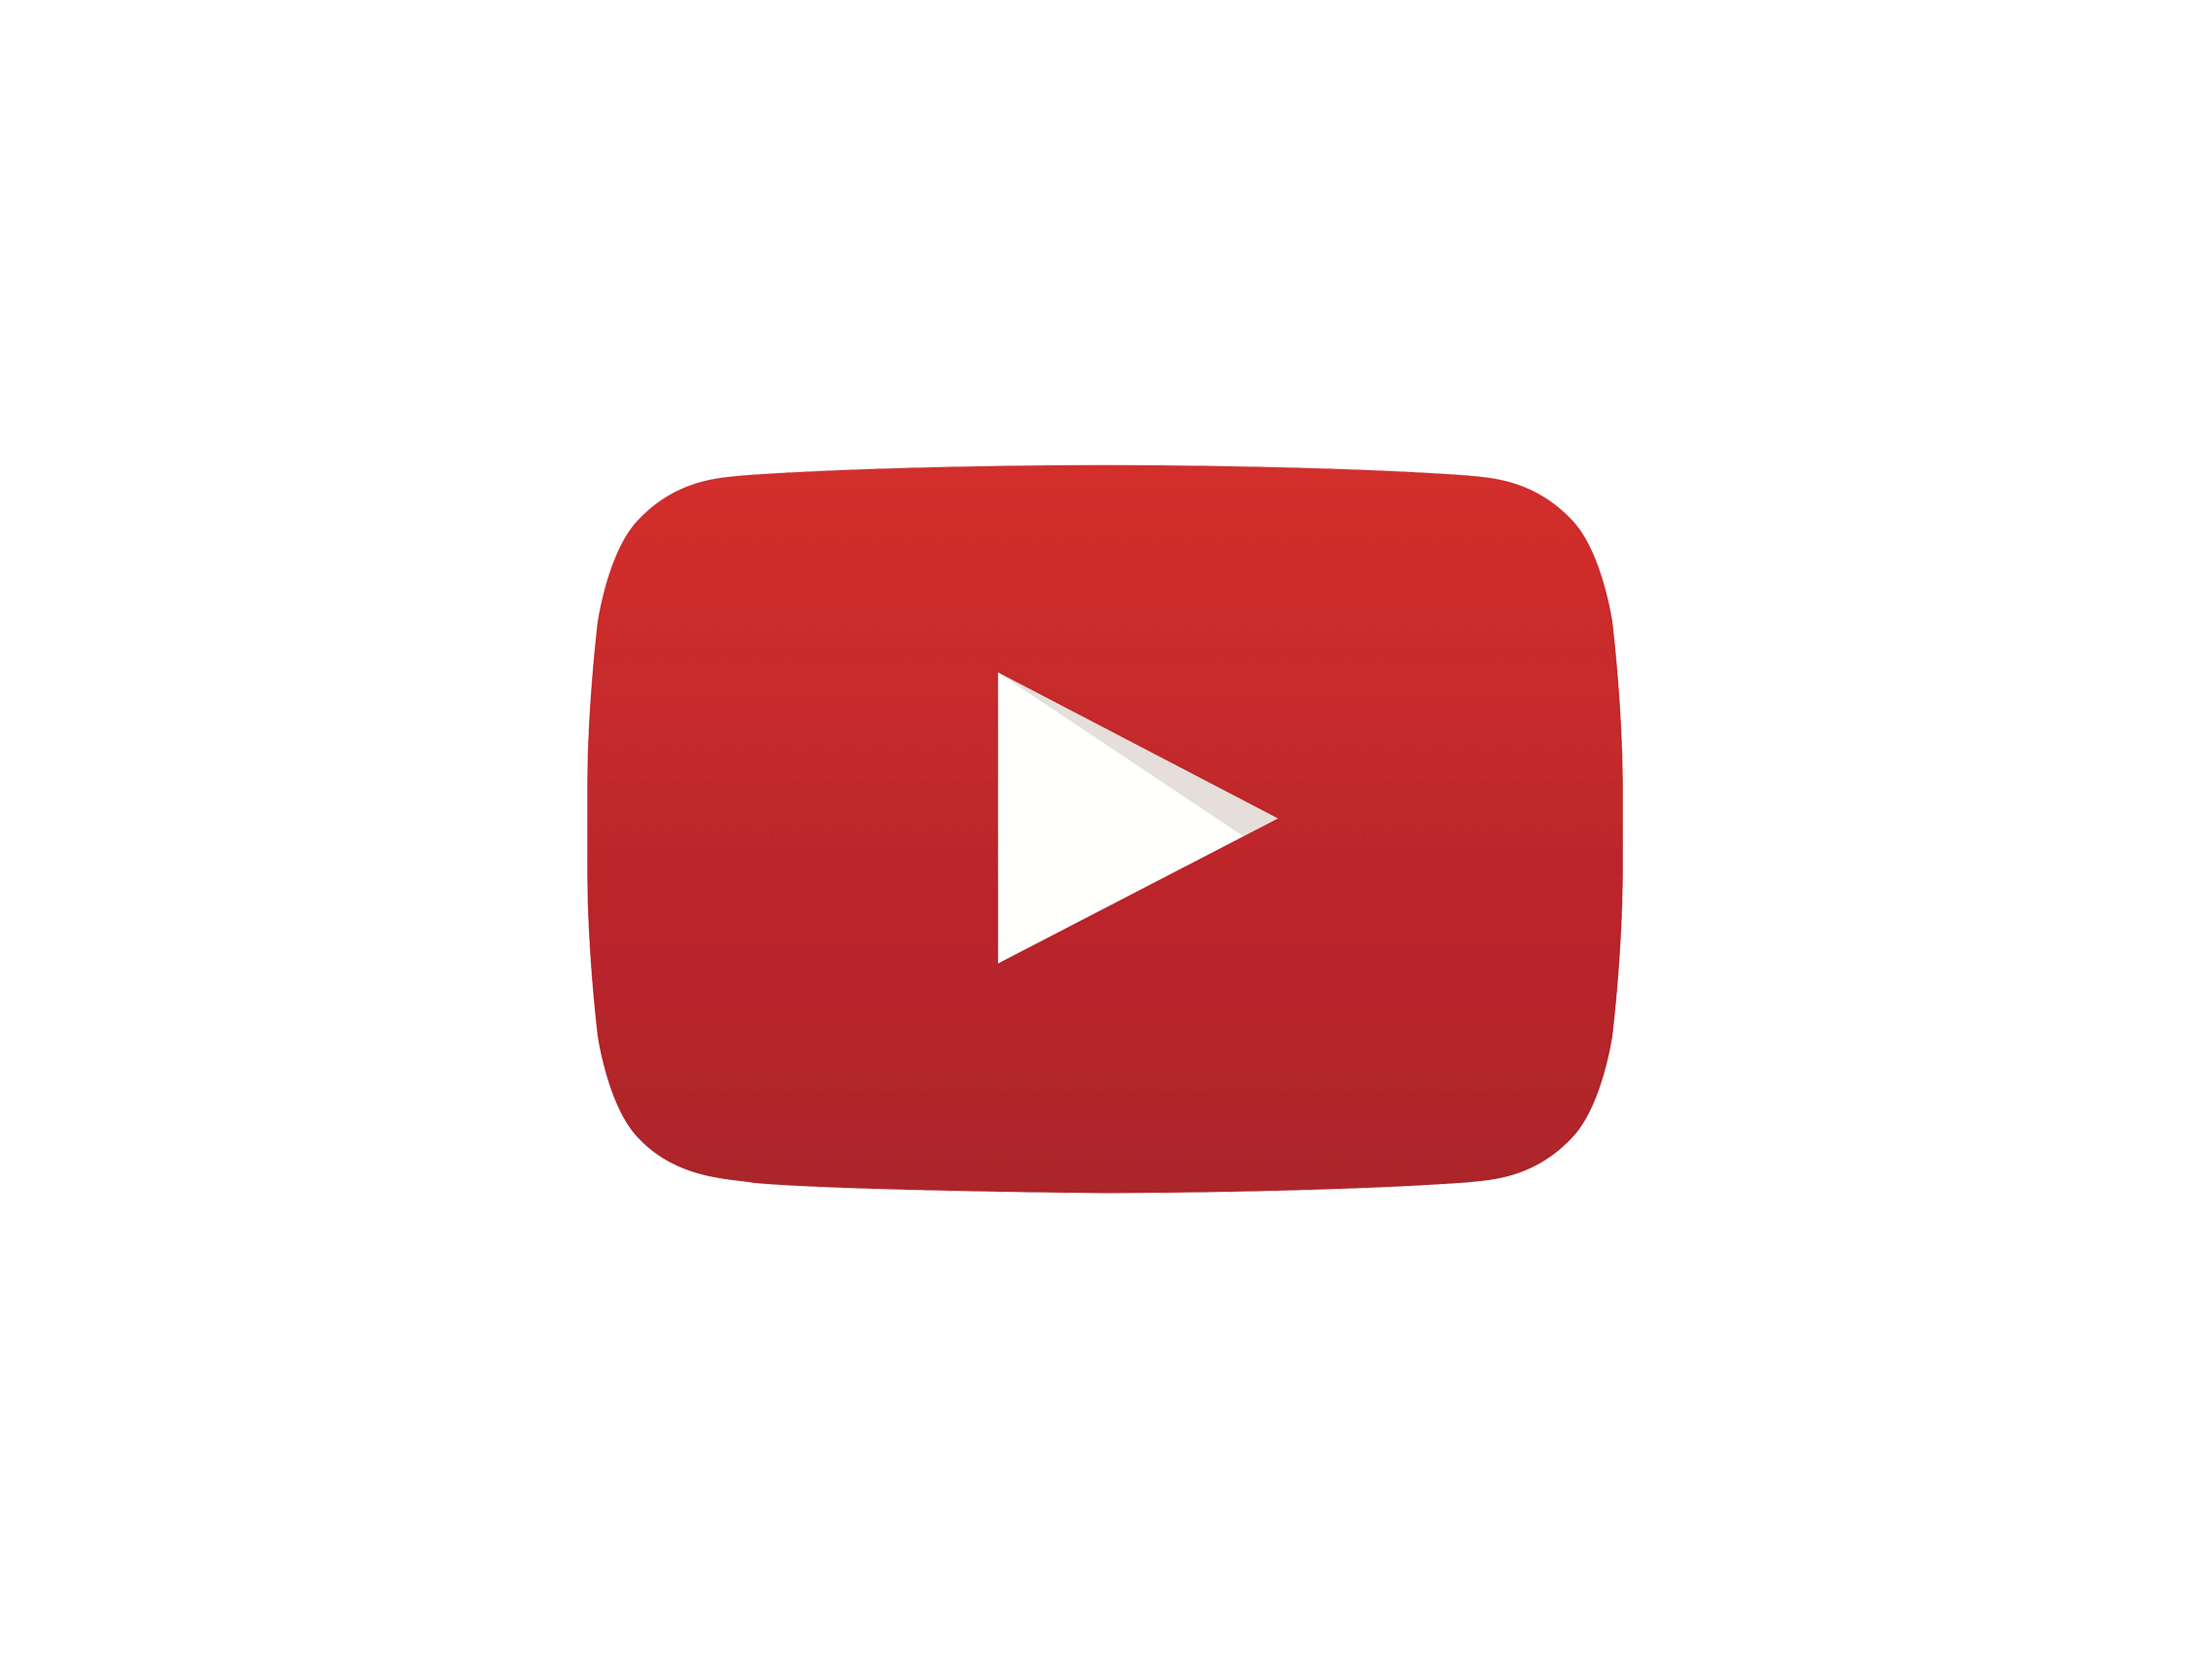 Logo youtube png. Transparent pictures free icons